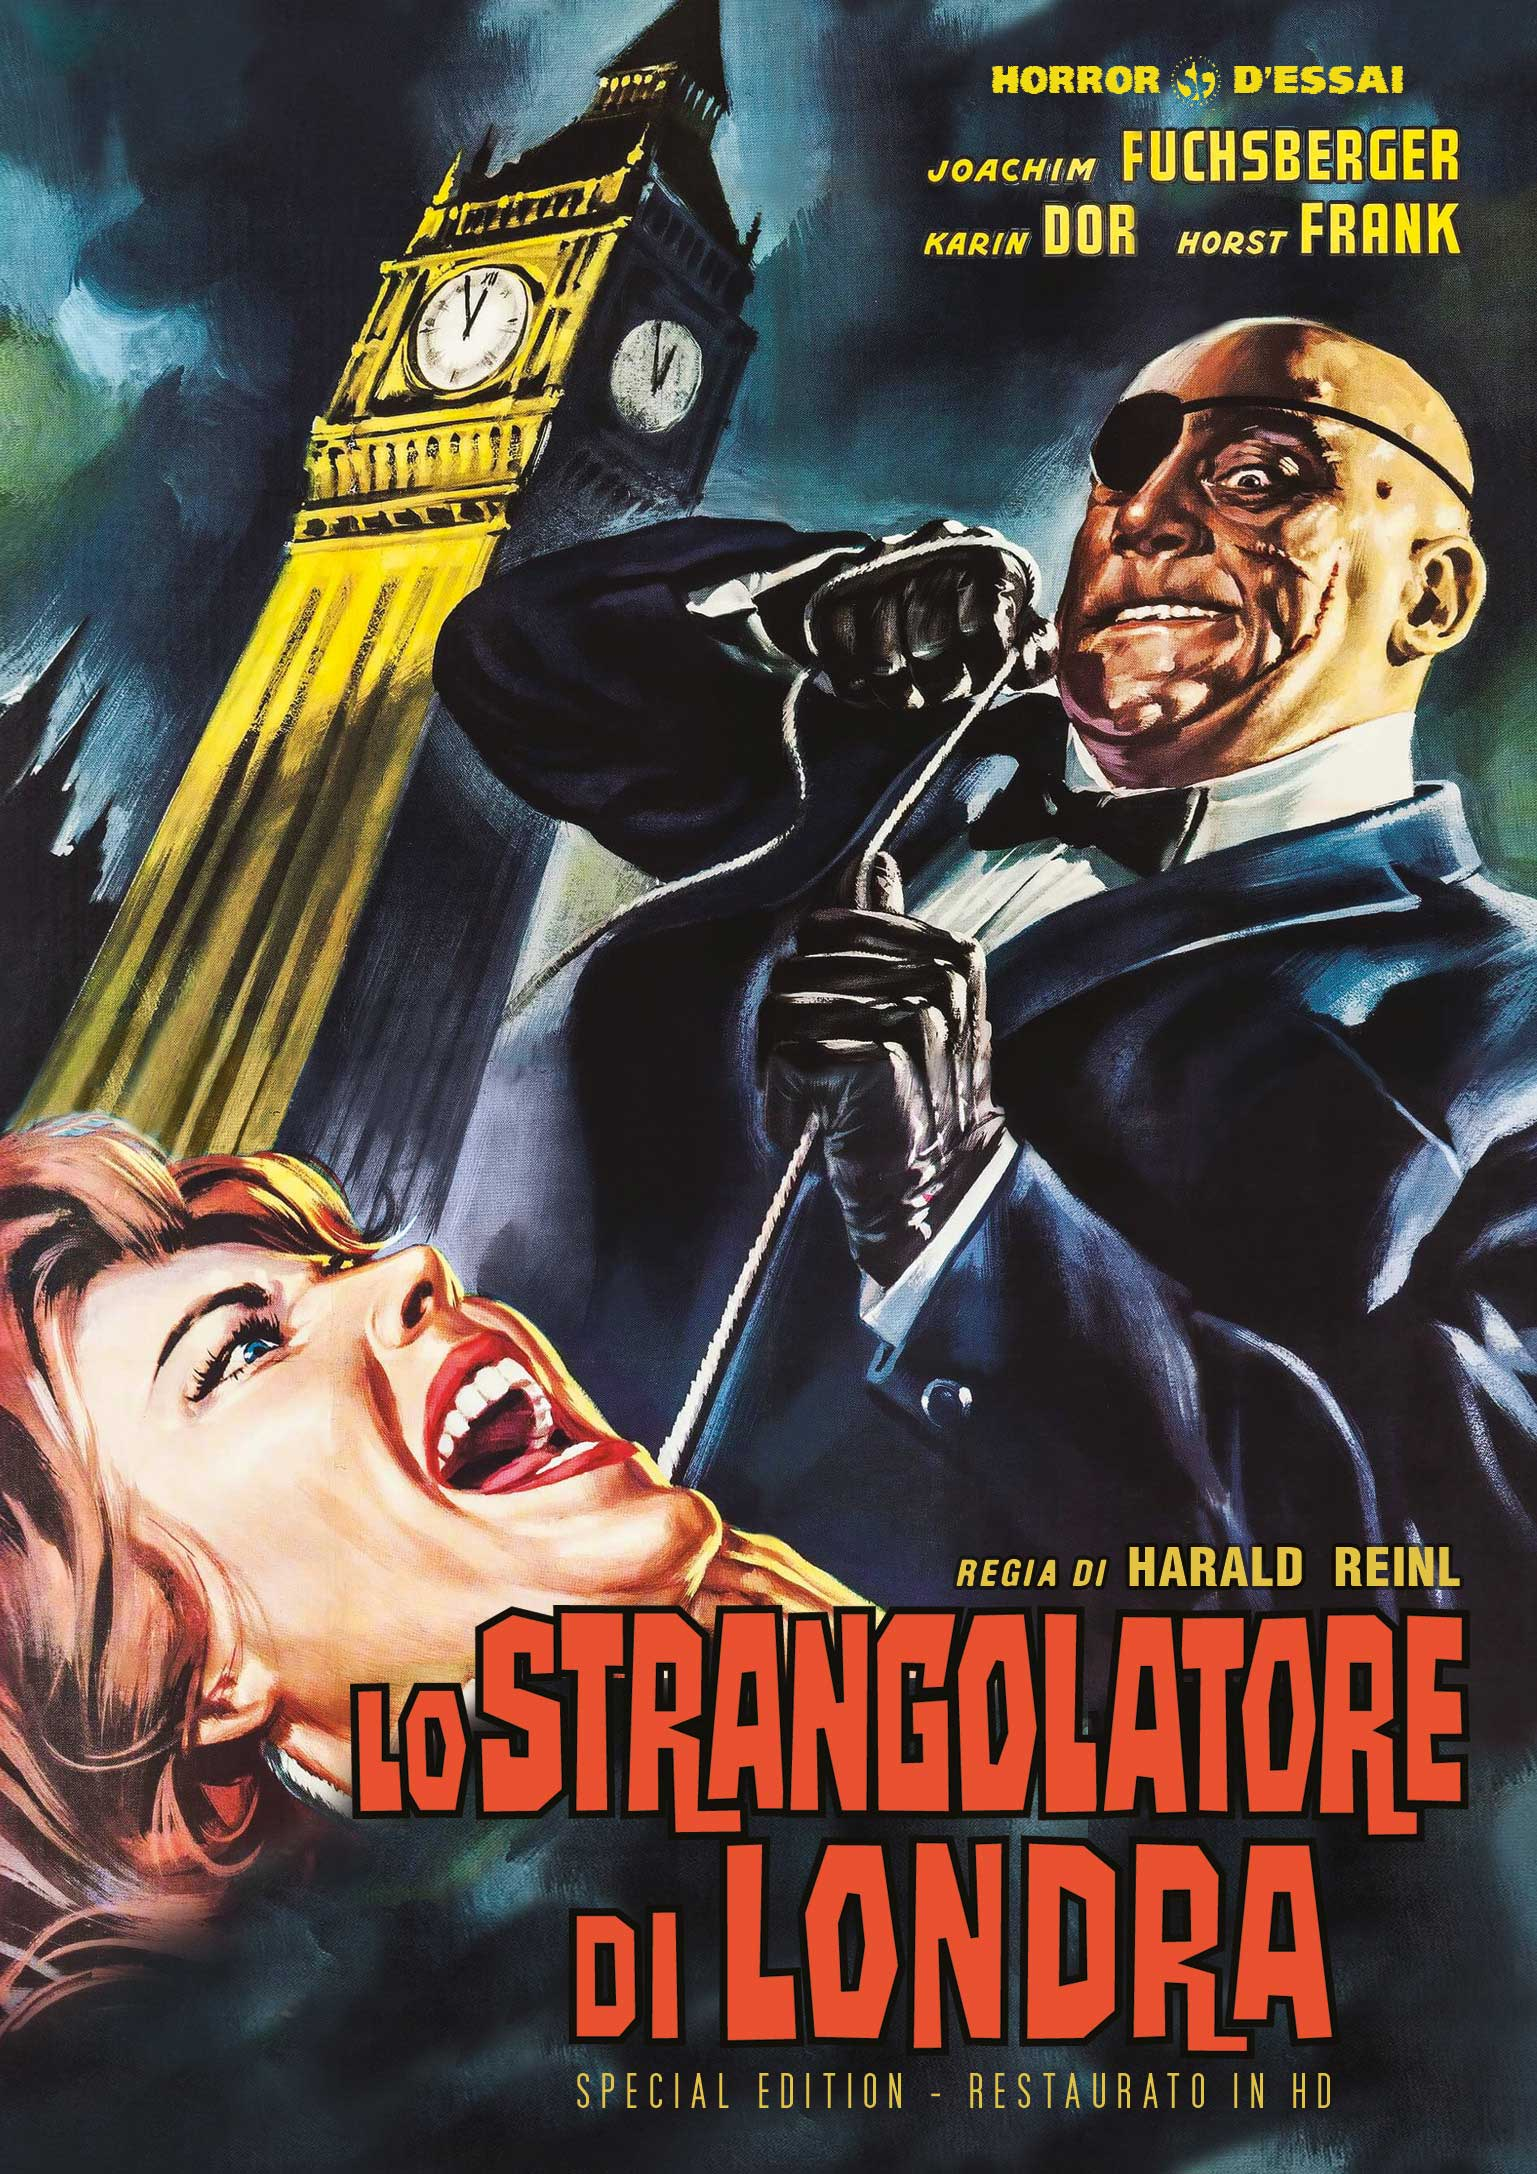 LO STRANGOLATORE DI LONDRA (SPECIAL EDITION) (RESTAURATO IN HD)